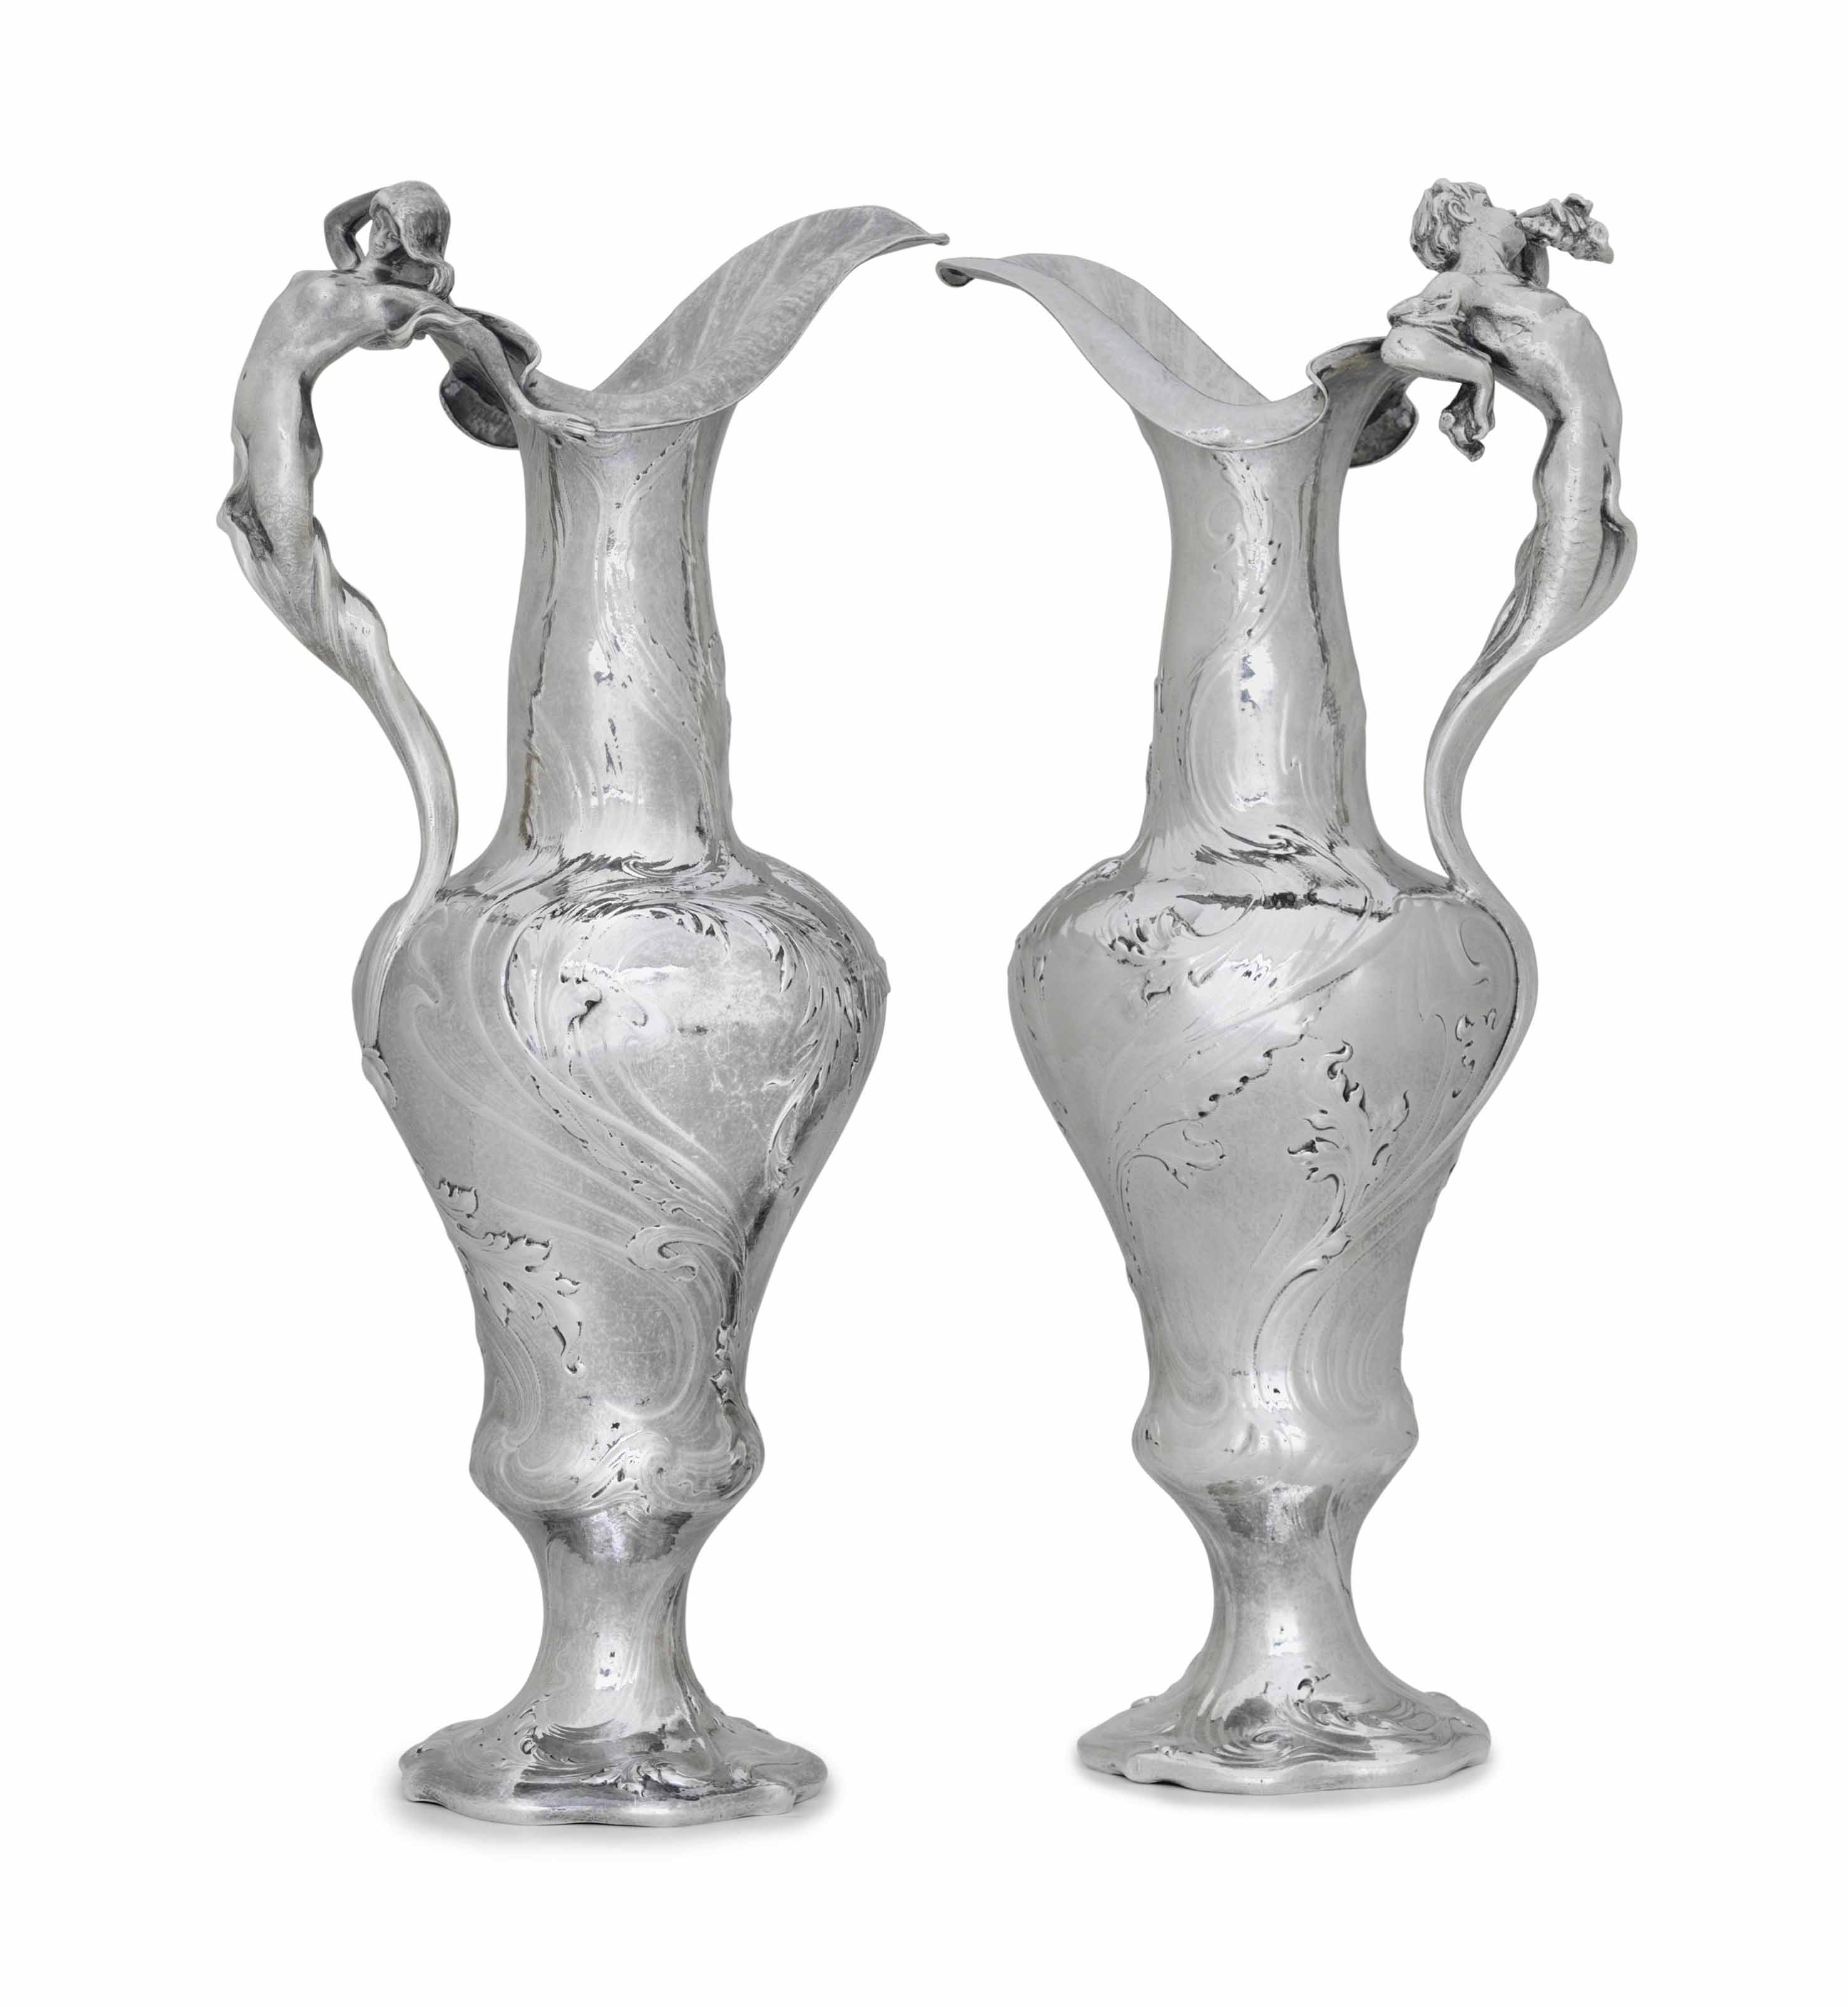 AN IMPORTANT PAIR OF MARTELE SILVER FIGURAL EWERS